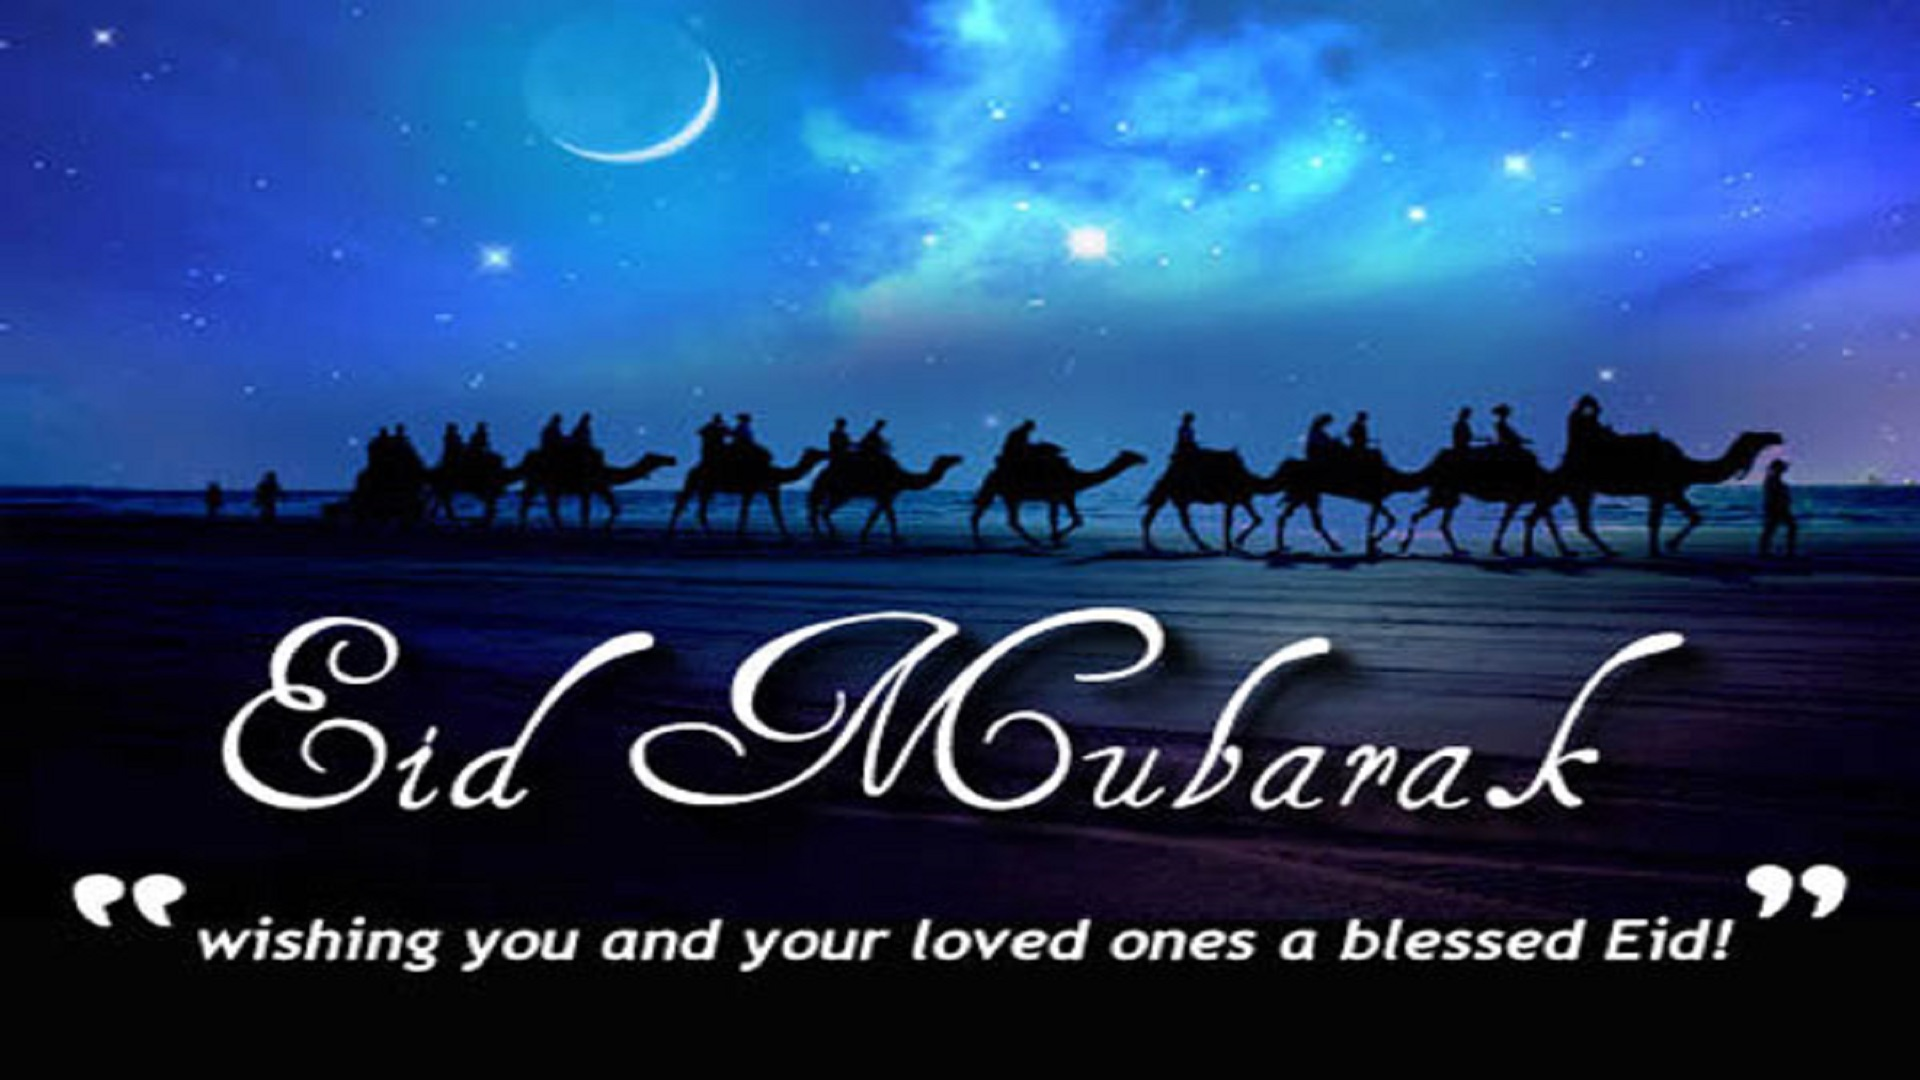 Eid ul fitr wallpapers greetings free hd hd wallpaper eid ul fitr wallpapers greetings free hd m4hsunfo